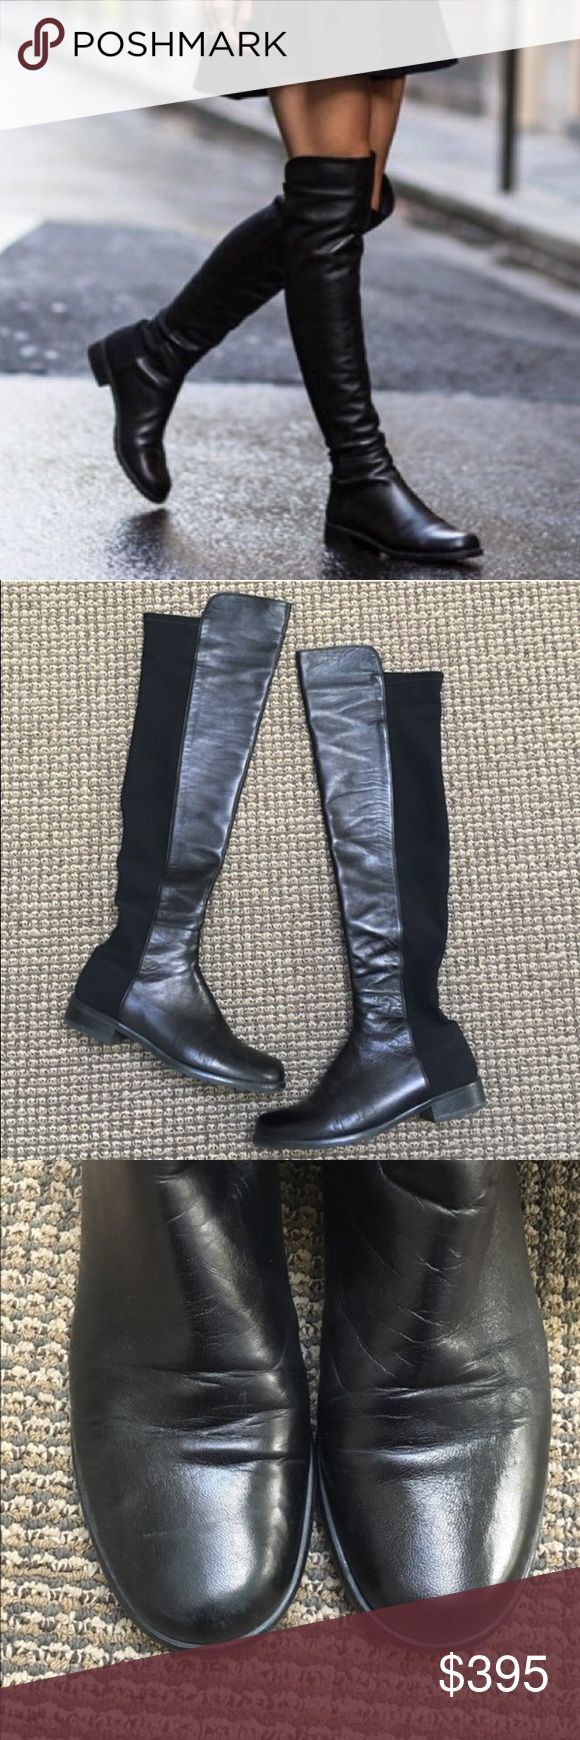 How To Wear 5050 Boots - Image Collections Boot